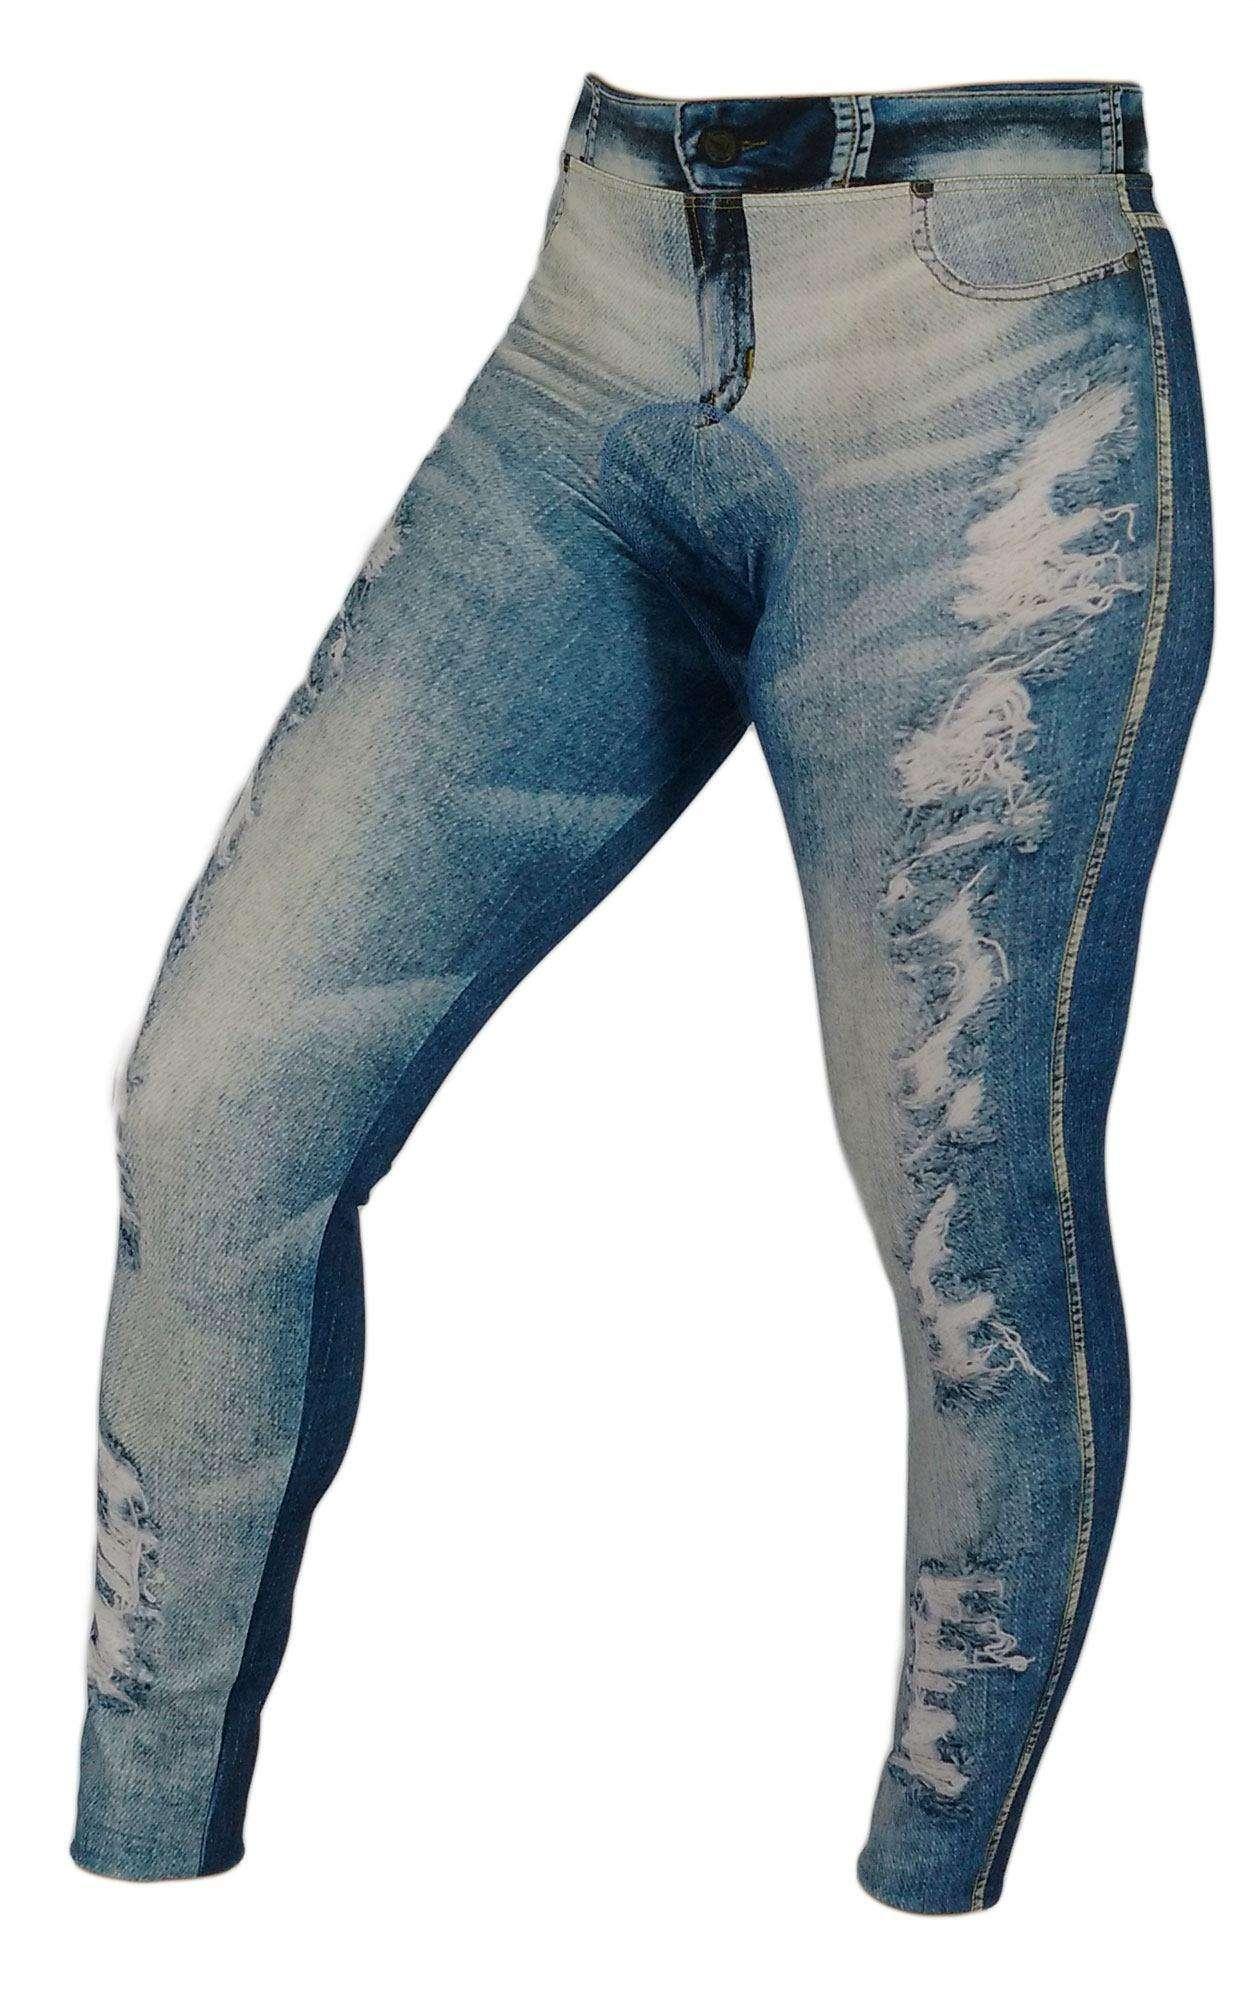 CALCA VILLA SPORTS FEMININA CYCLING JEANS RIPPED AZUL